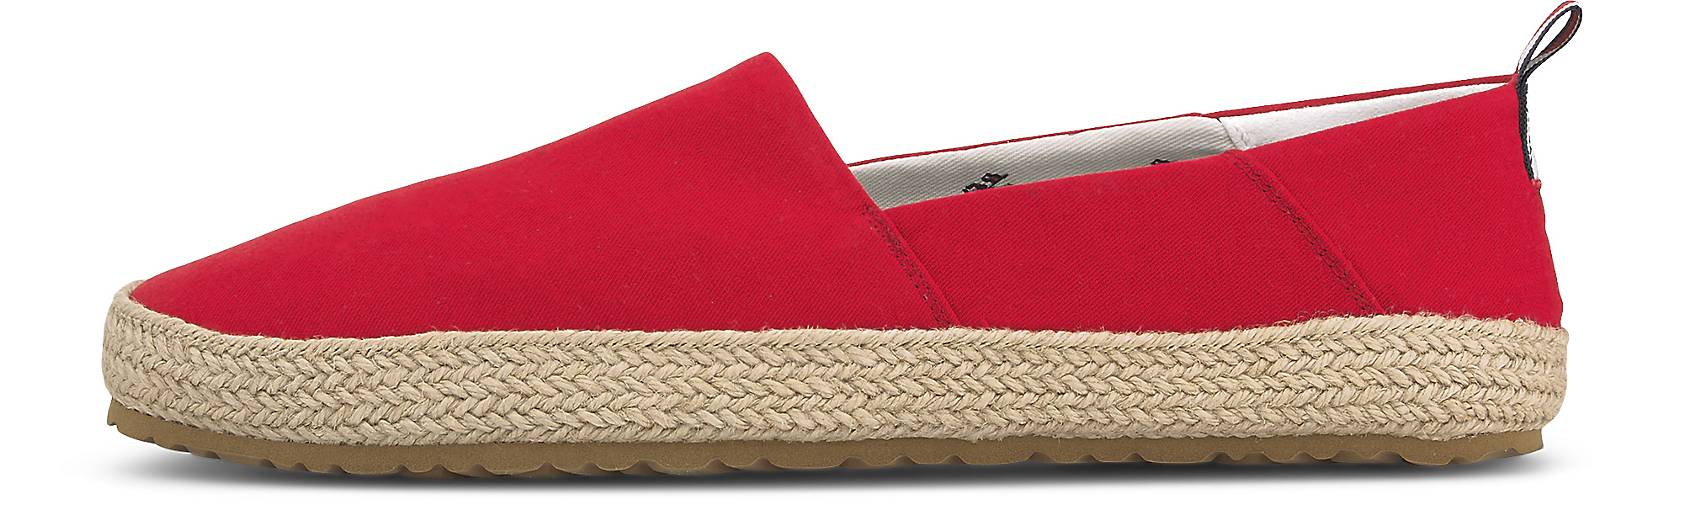 Tommy Hilfiger Slipper RECYCLED COTTON ESPADRILLE